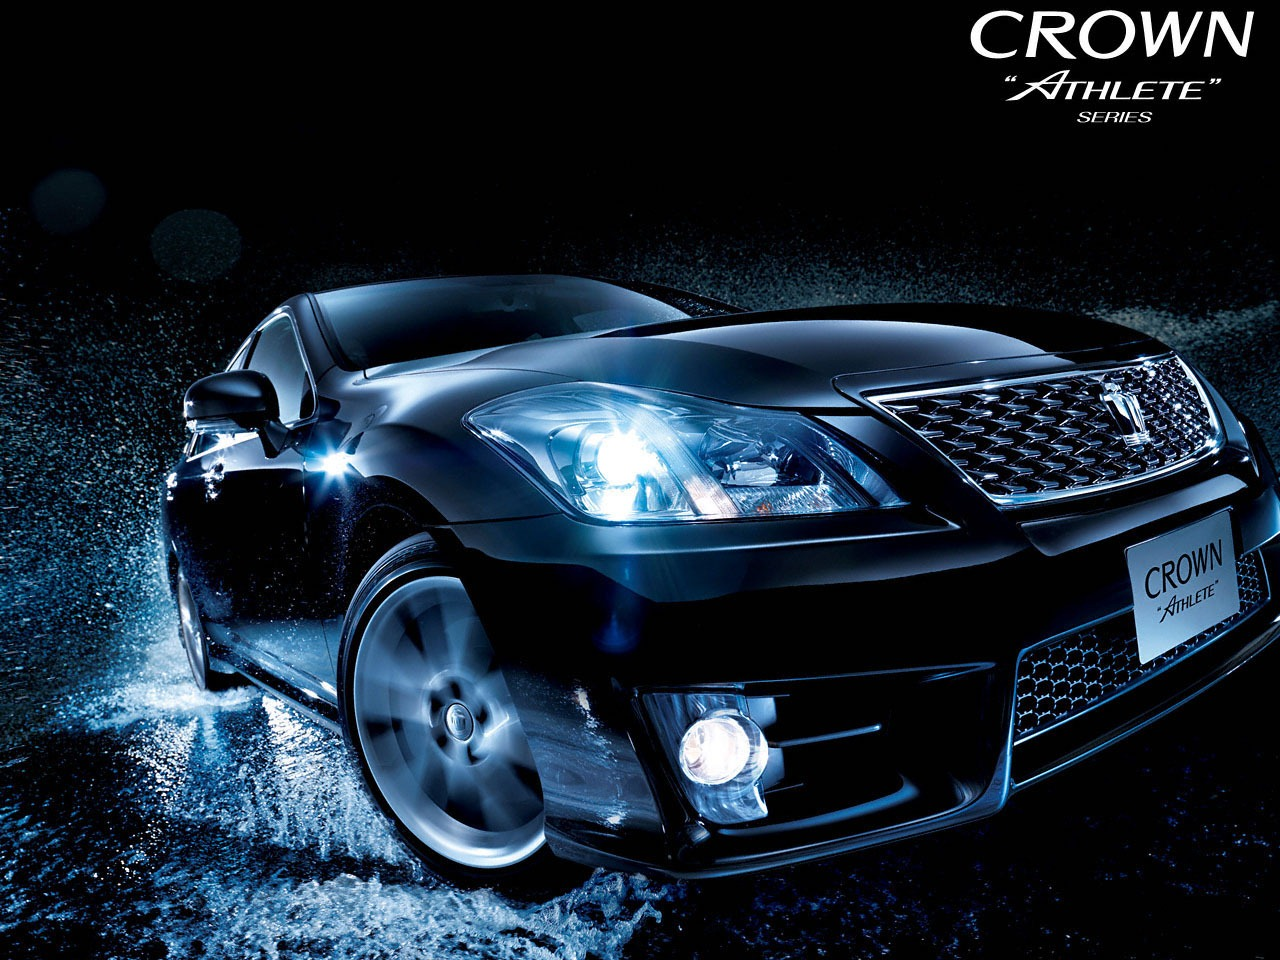 New Wave Auto >> 2013 Toyota Crown Royal and Athlete Revealed - autoevolution